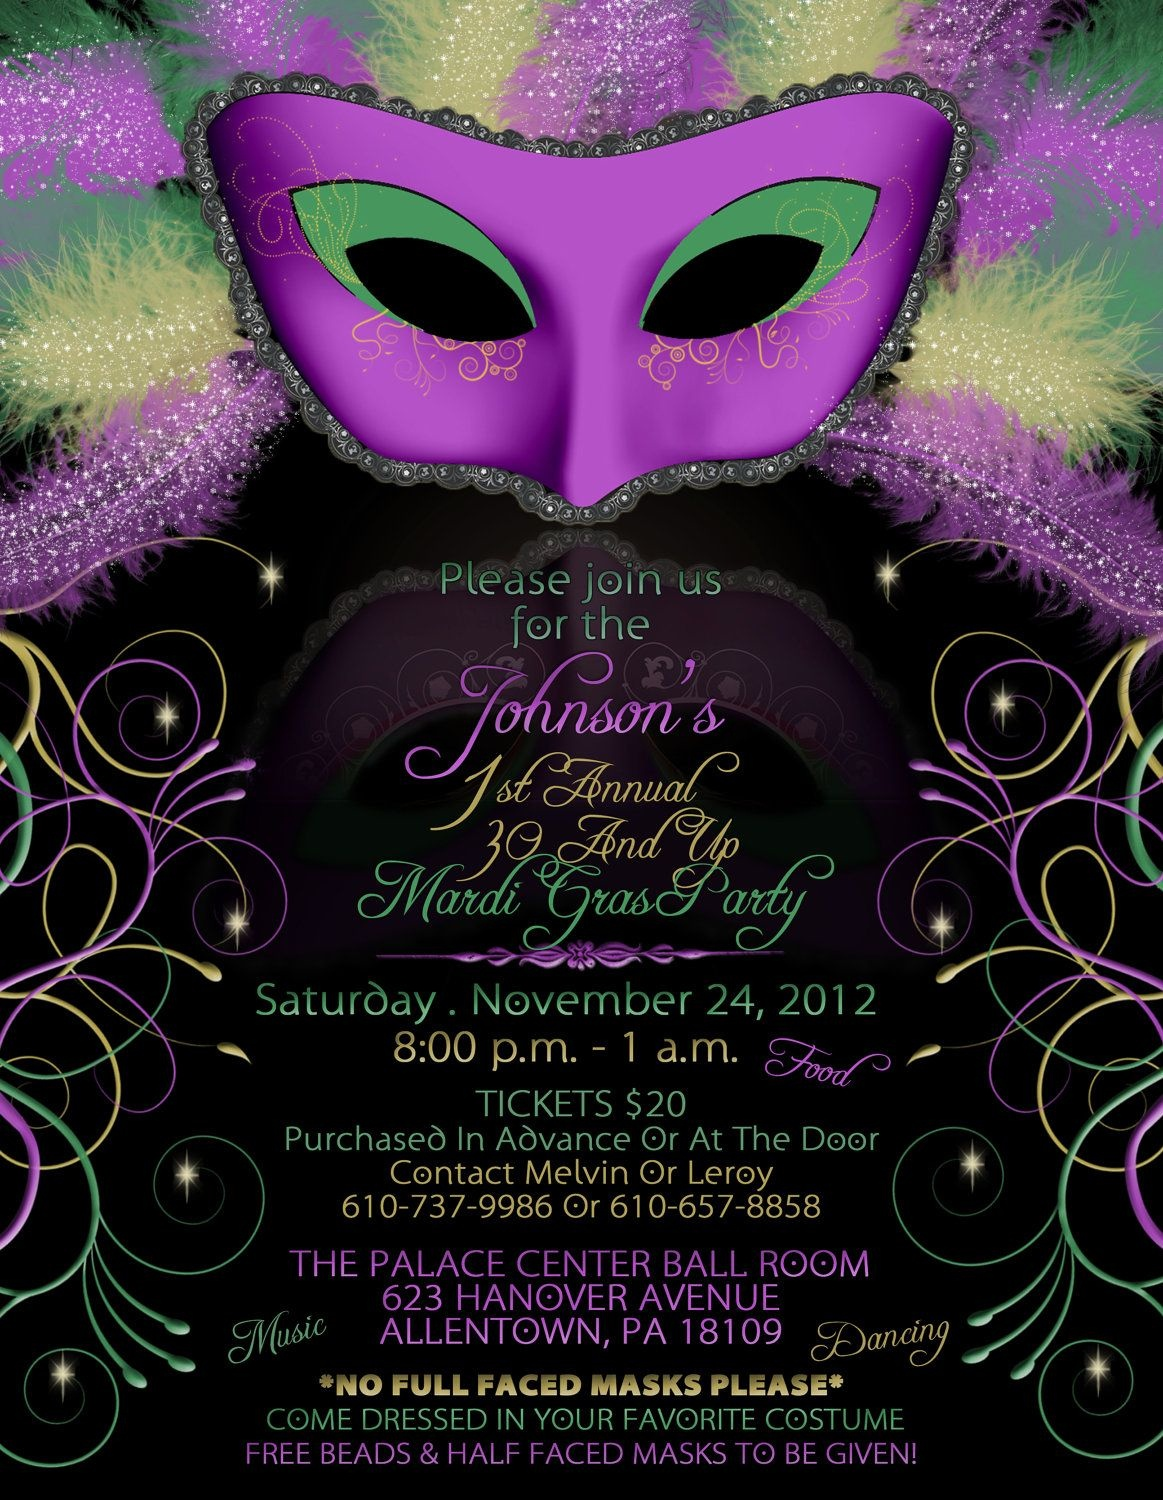 Mardi Gras Birthday Party Invitations | Mardi Gra | Mardi Gras Party - Free Printable Mardi Gras Invitations